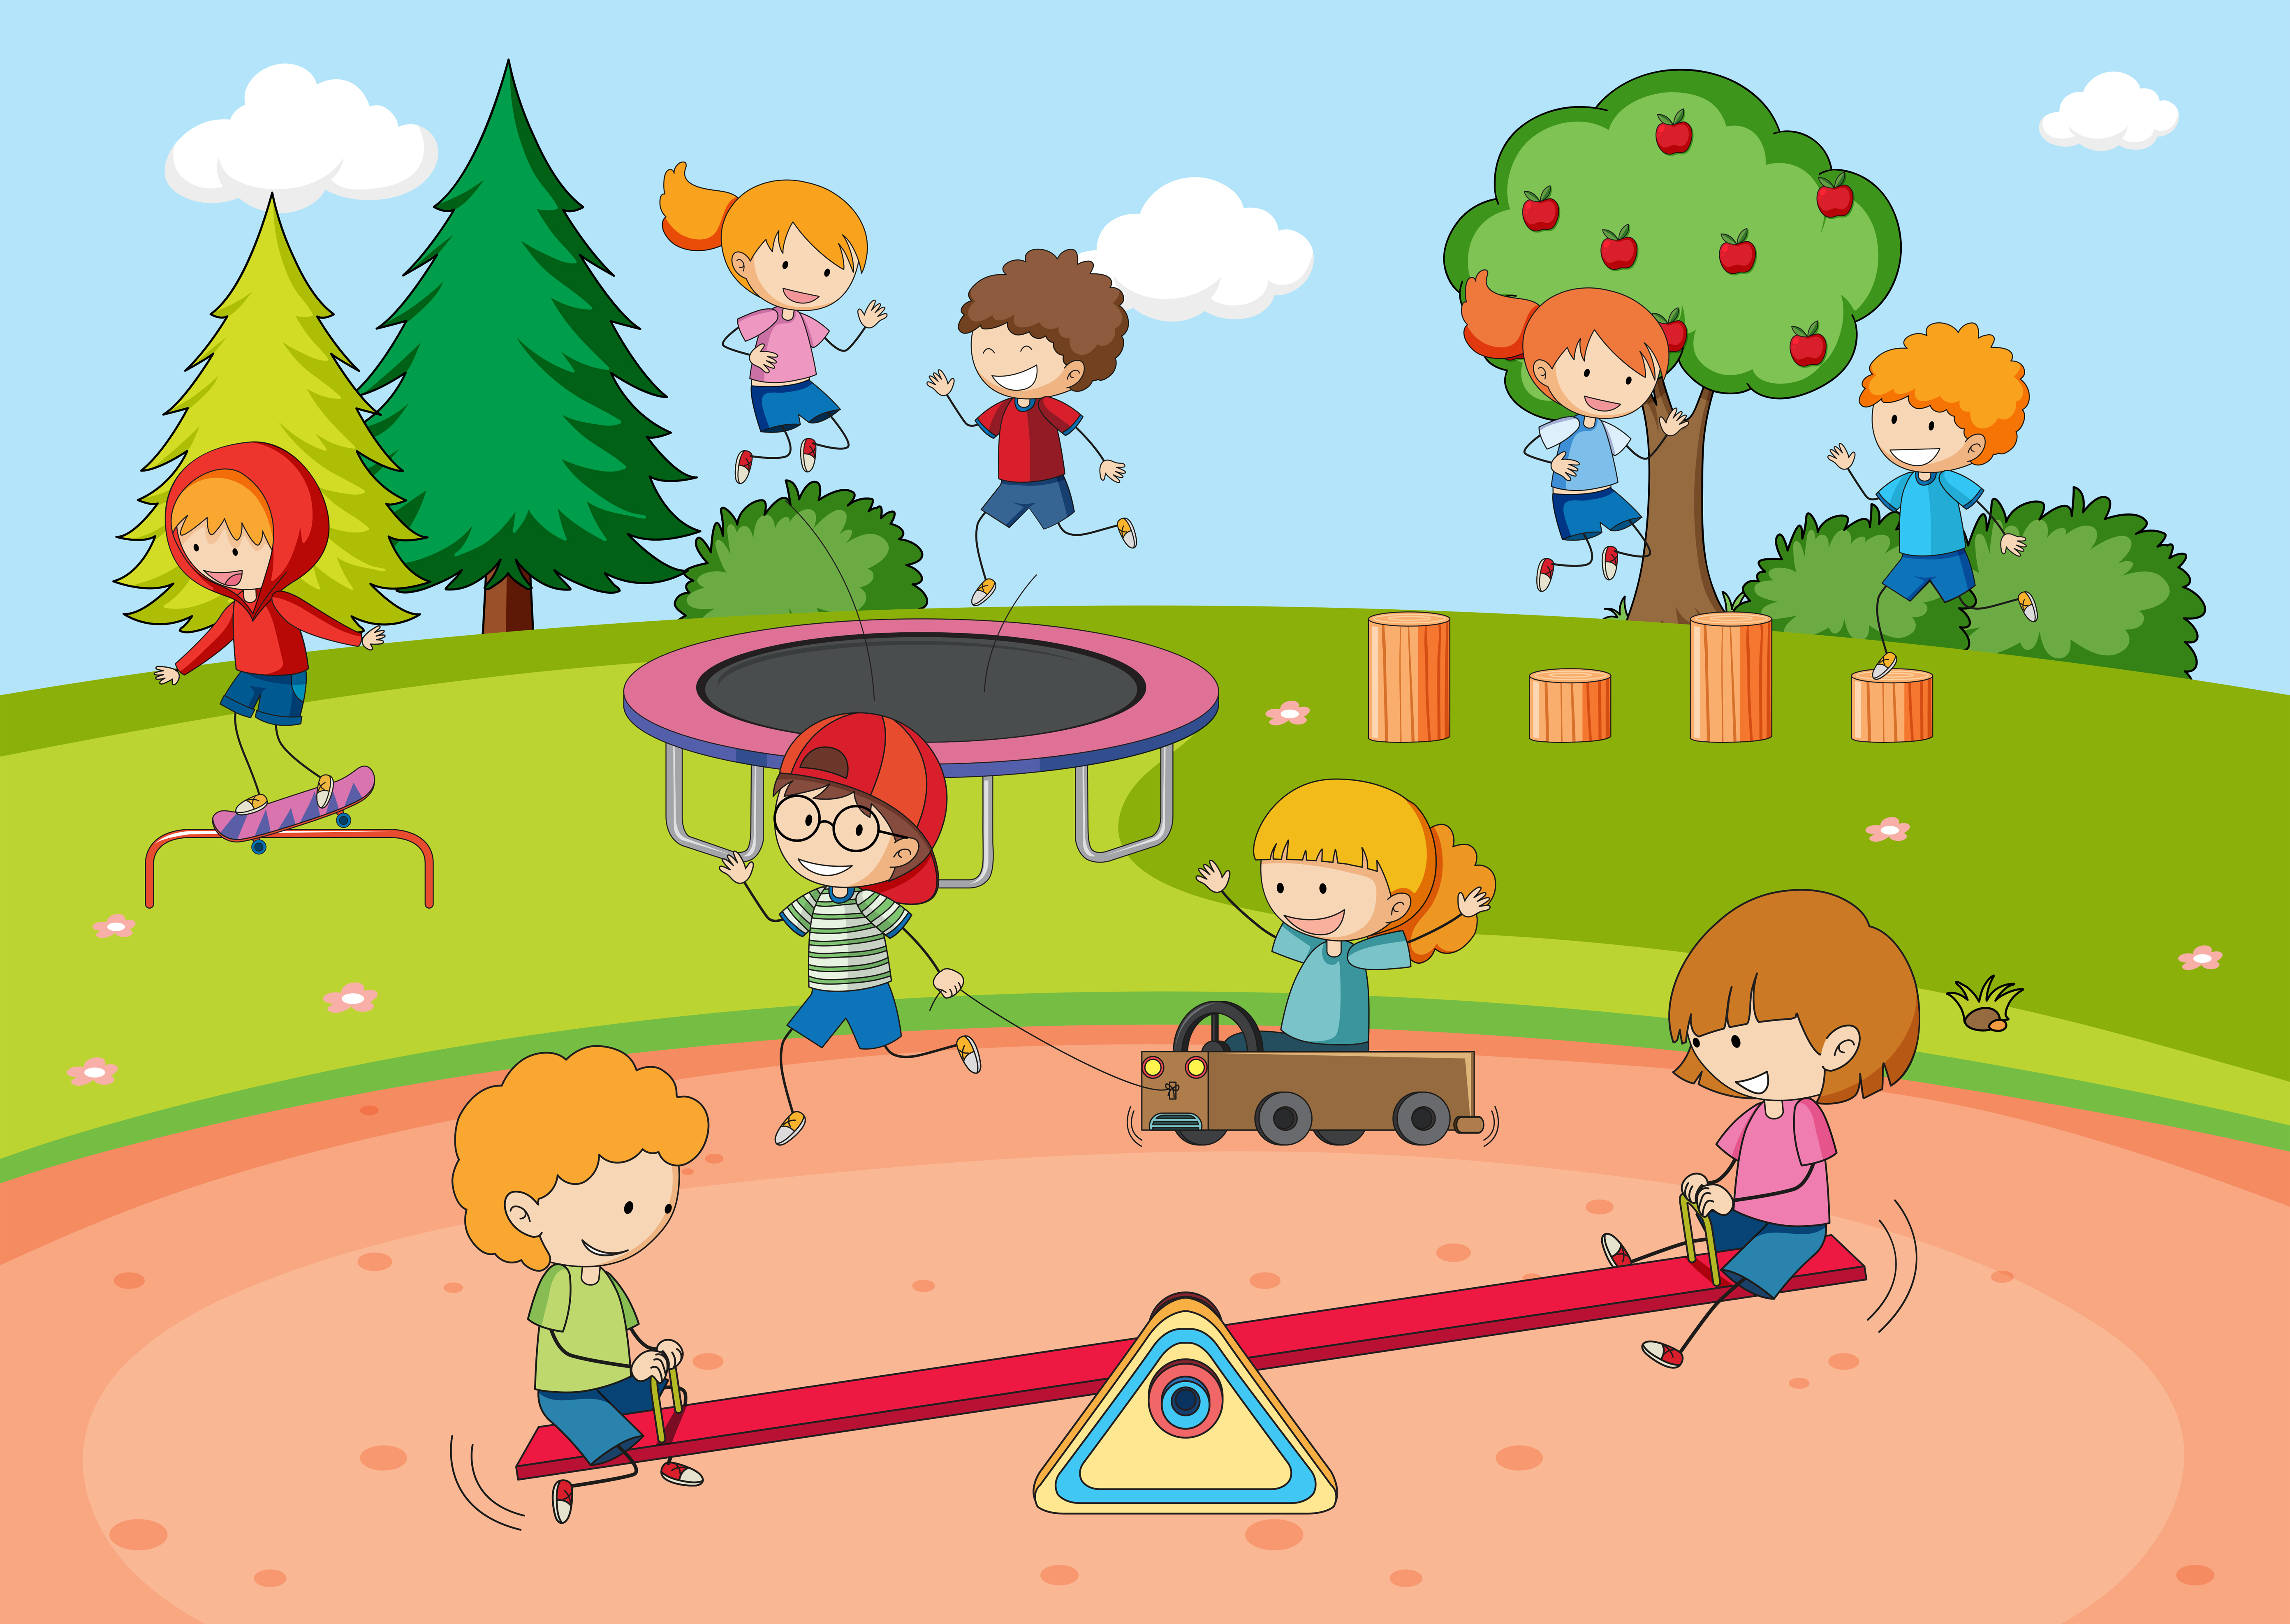 Children playing at playground - Download Free Vectors ...